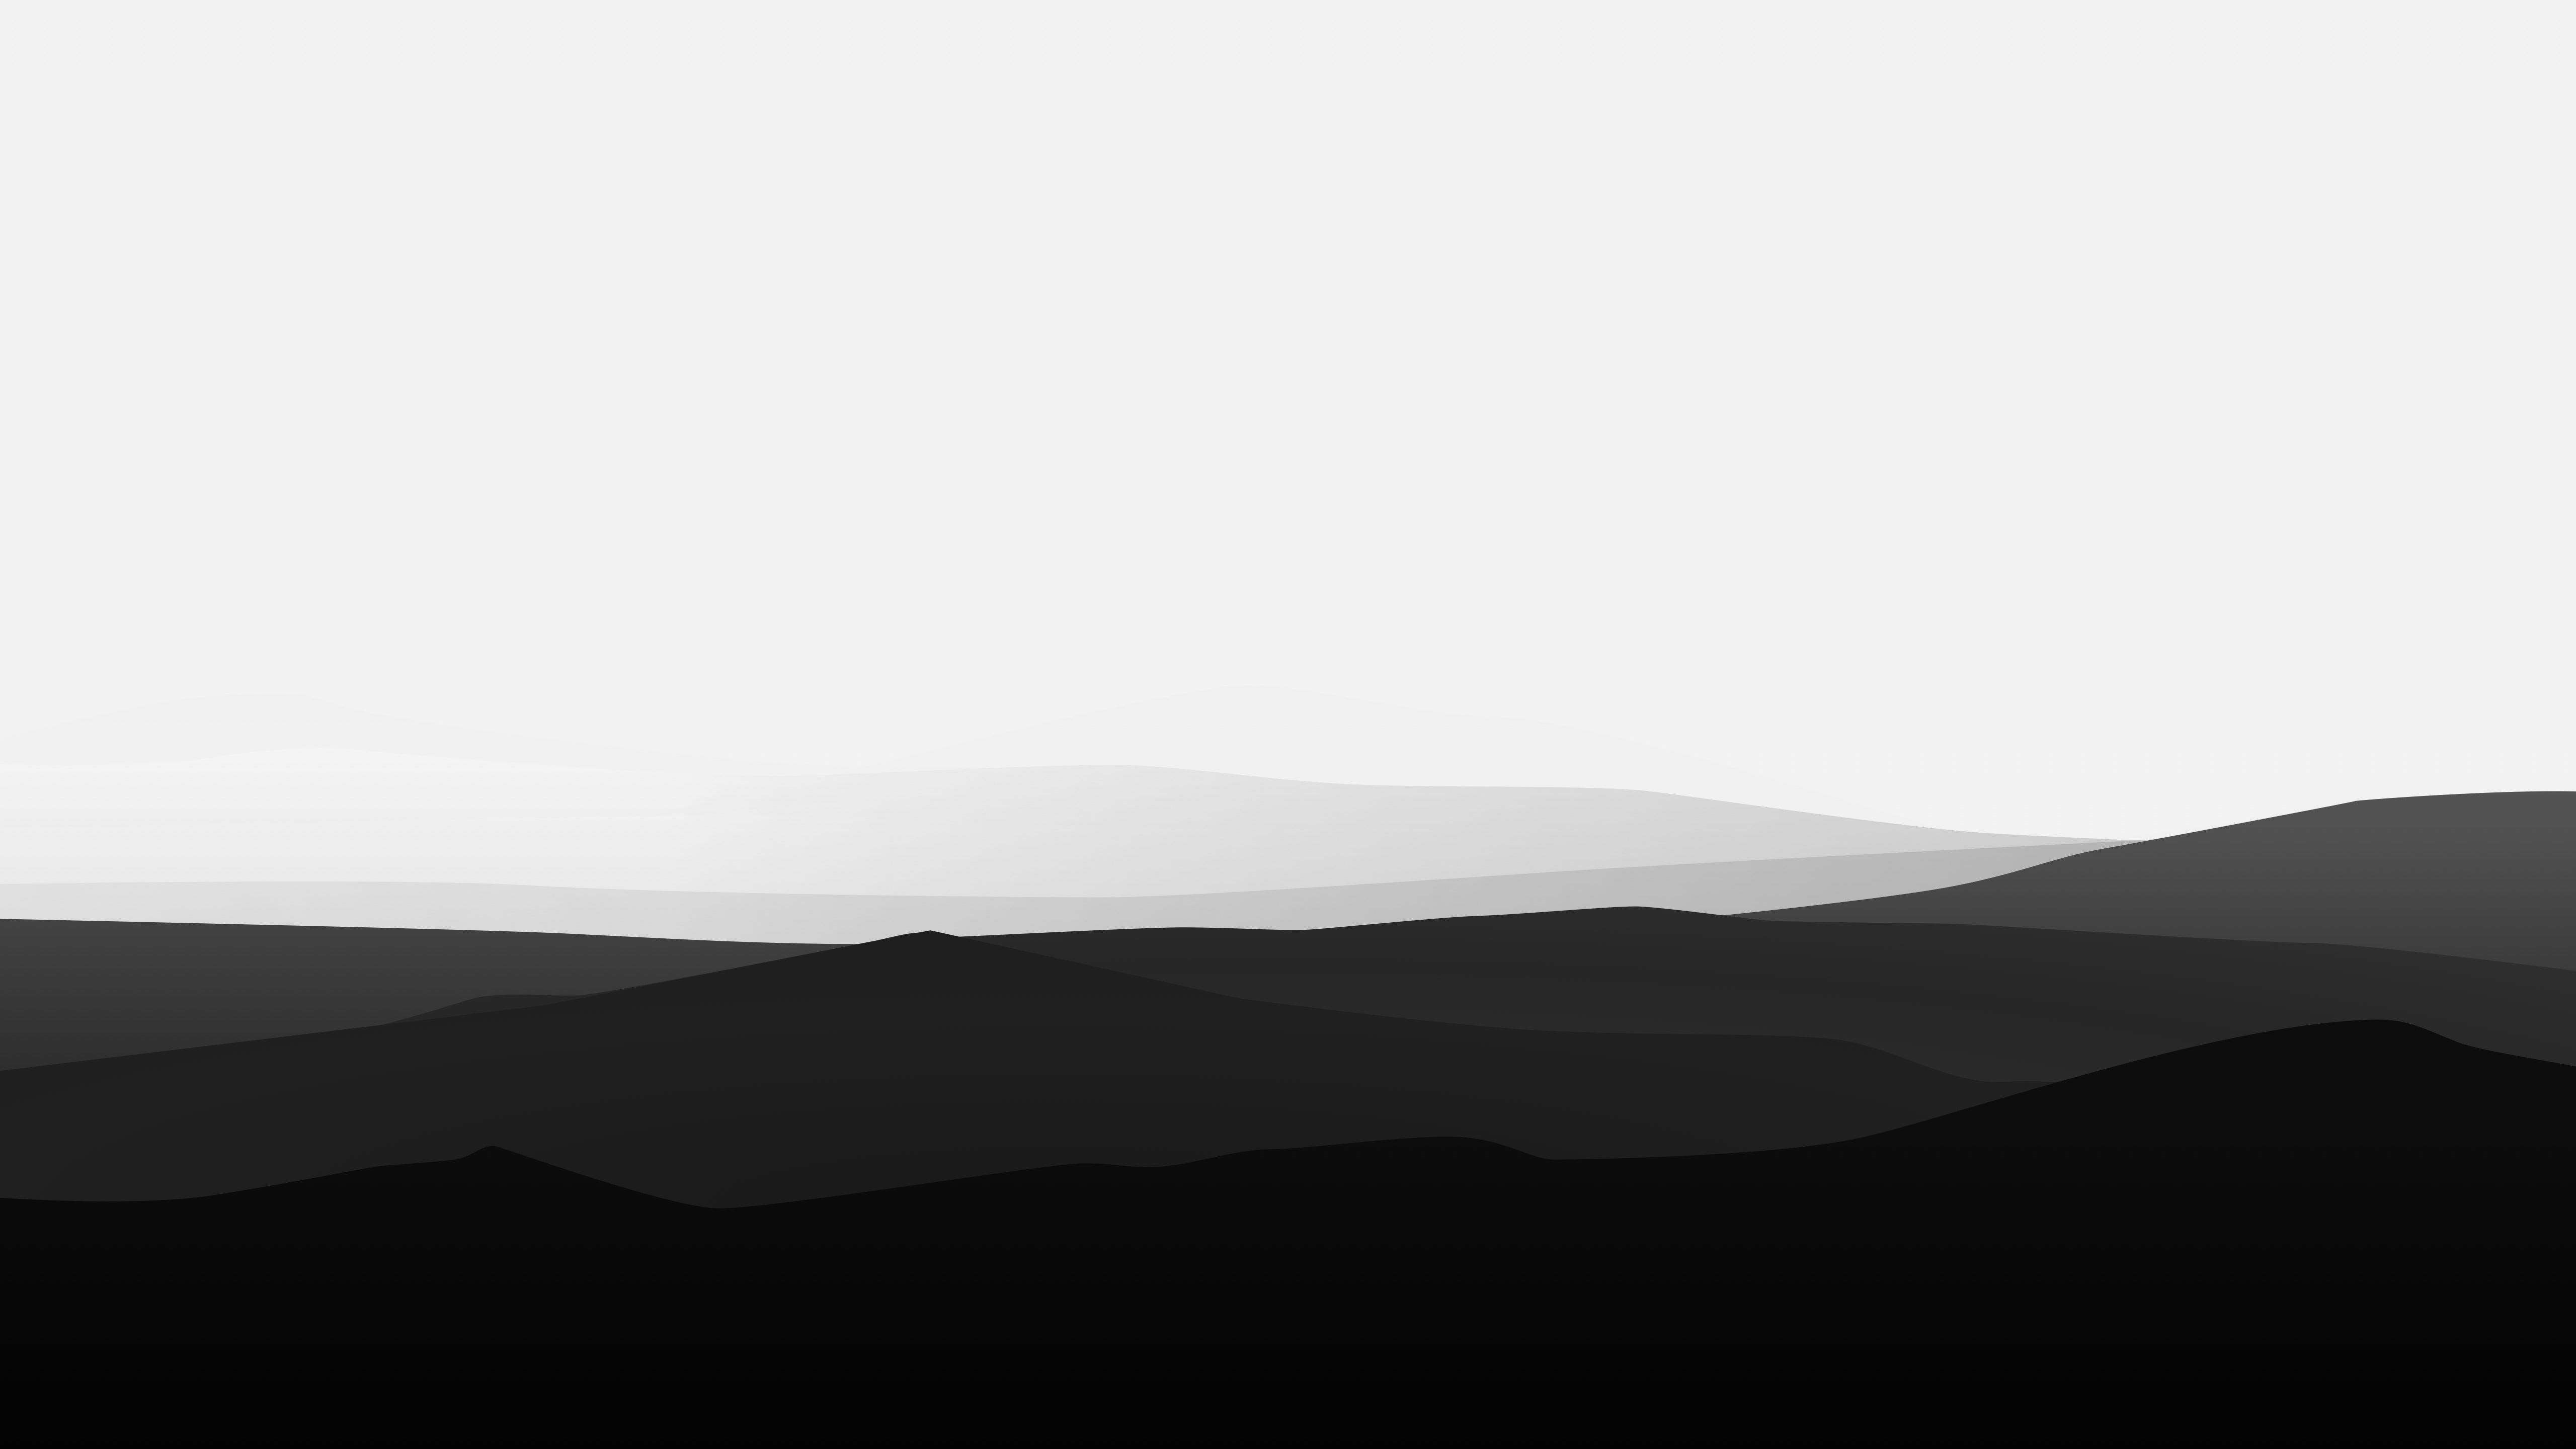 Artistic Minimalism Black And White Minimalist Mountain 5k Wallpaper Hdwal In 2020 Desktop Wallpaper Black Black And White Wallpaper Aesthetic Desktop Wallpaper